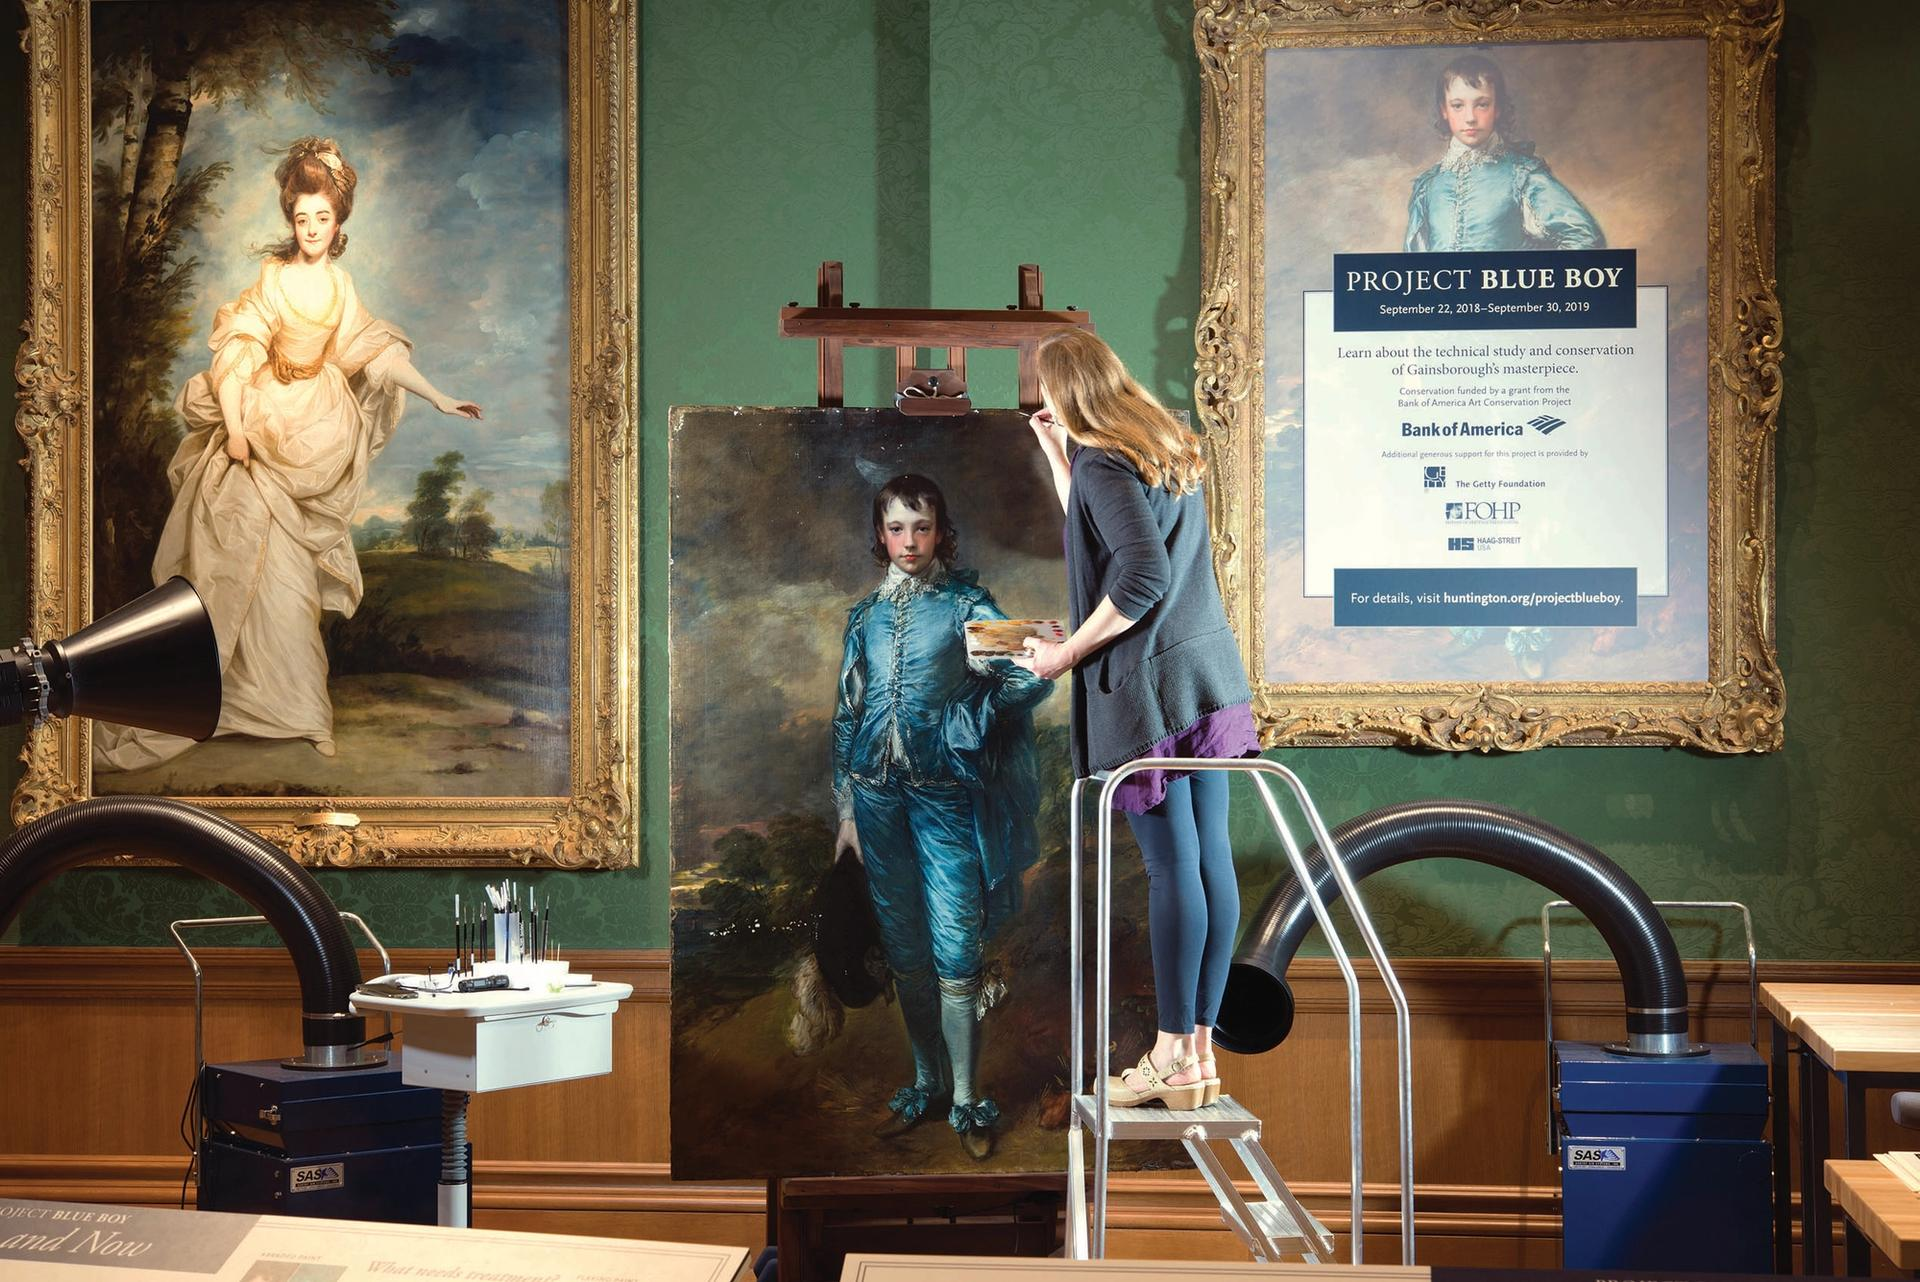 Conservator Christina O'Connell at work on The Blue Boy in one of the Huntington's galleries—more than 200,000 visitors witnessed the conservation in progress in 2018-19 Courtesy of The Huntington Library, Art Museum and Botanical Gardens